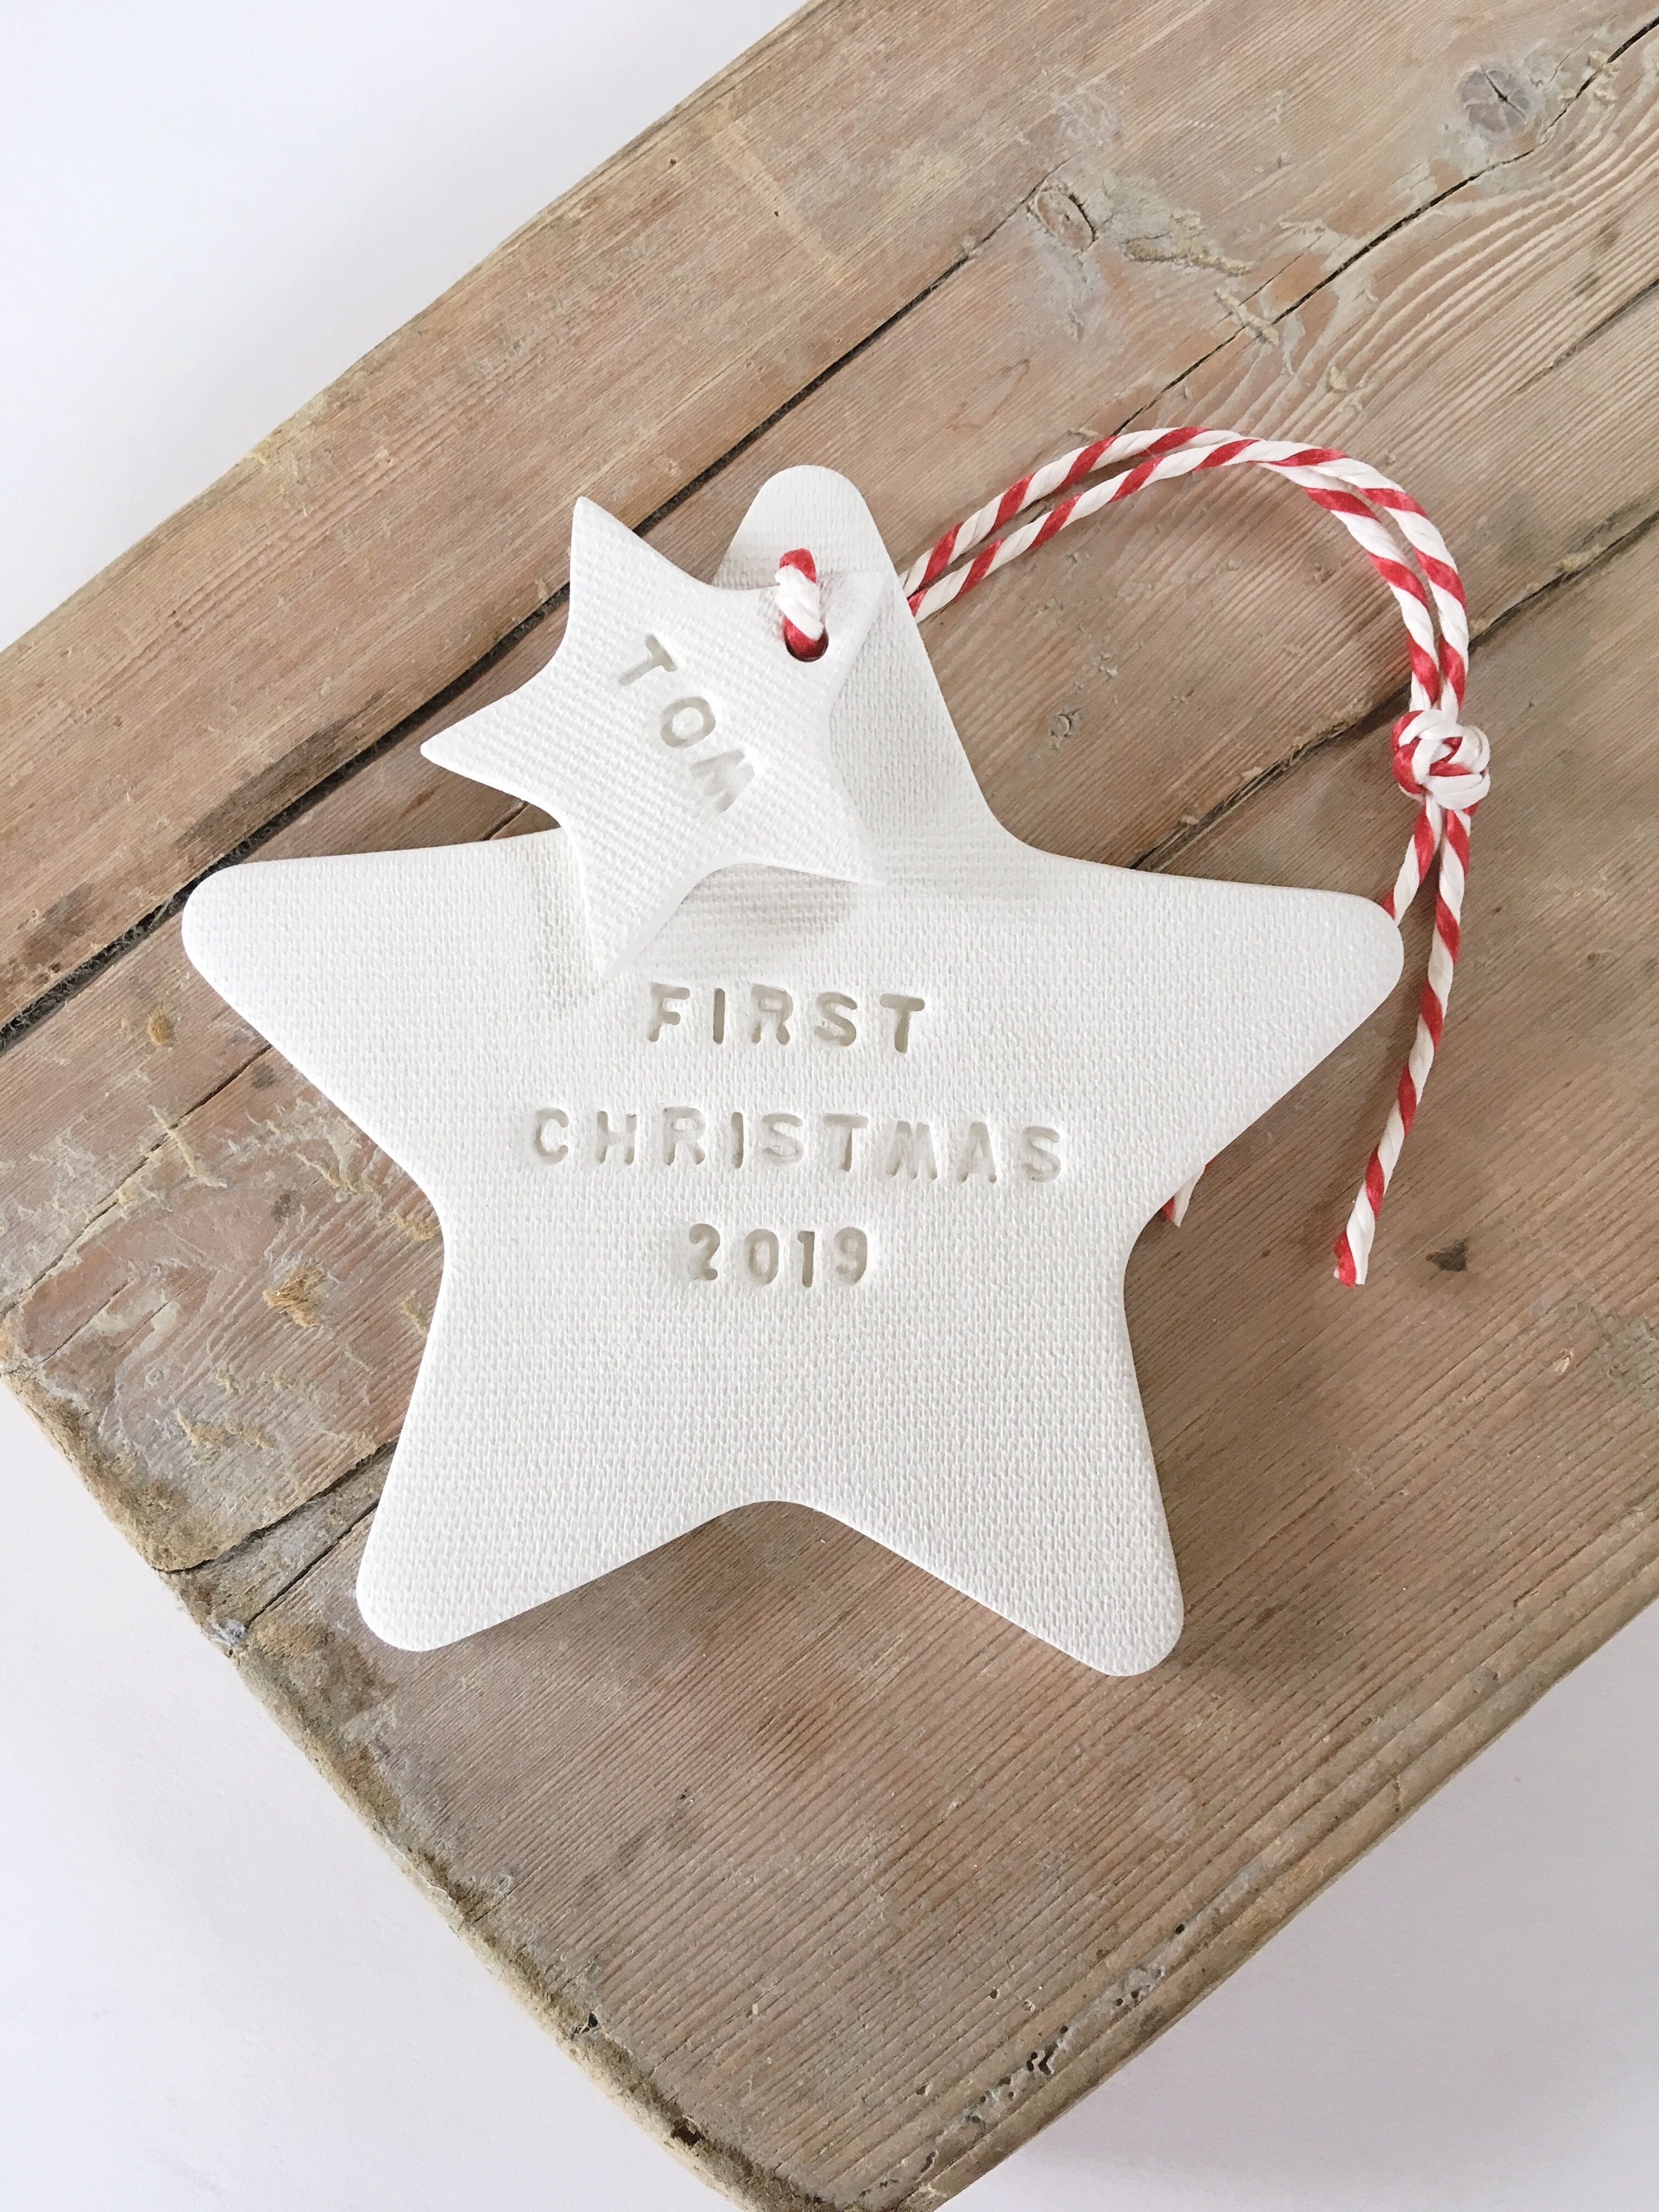 First Christmas 2020 White Clay Christmas Decoration Etsy Clay Christmas Decorations Christmas Clay Christmas Ornaments